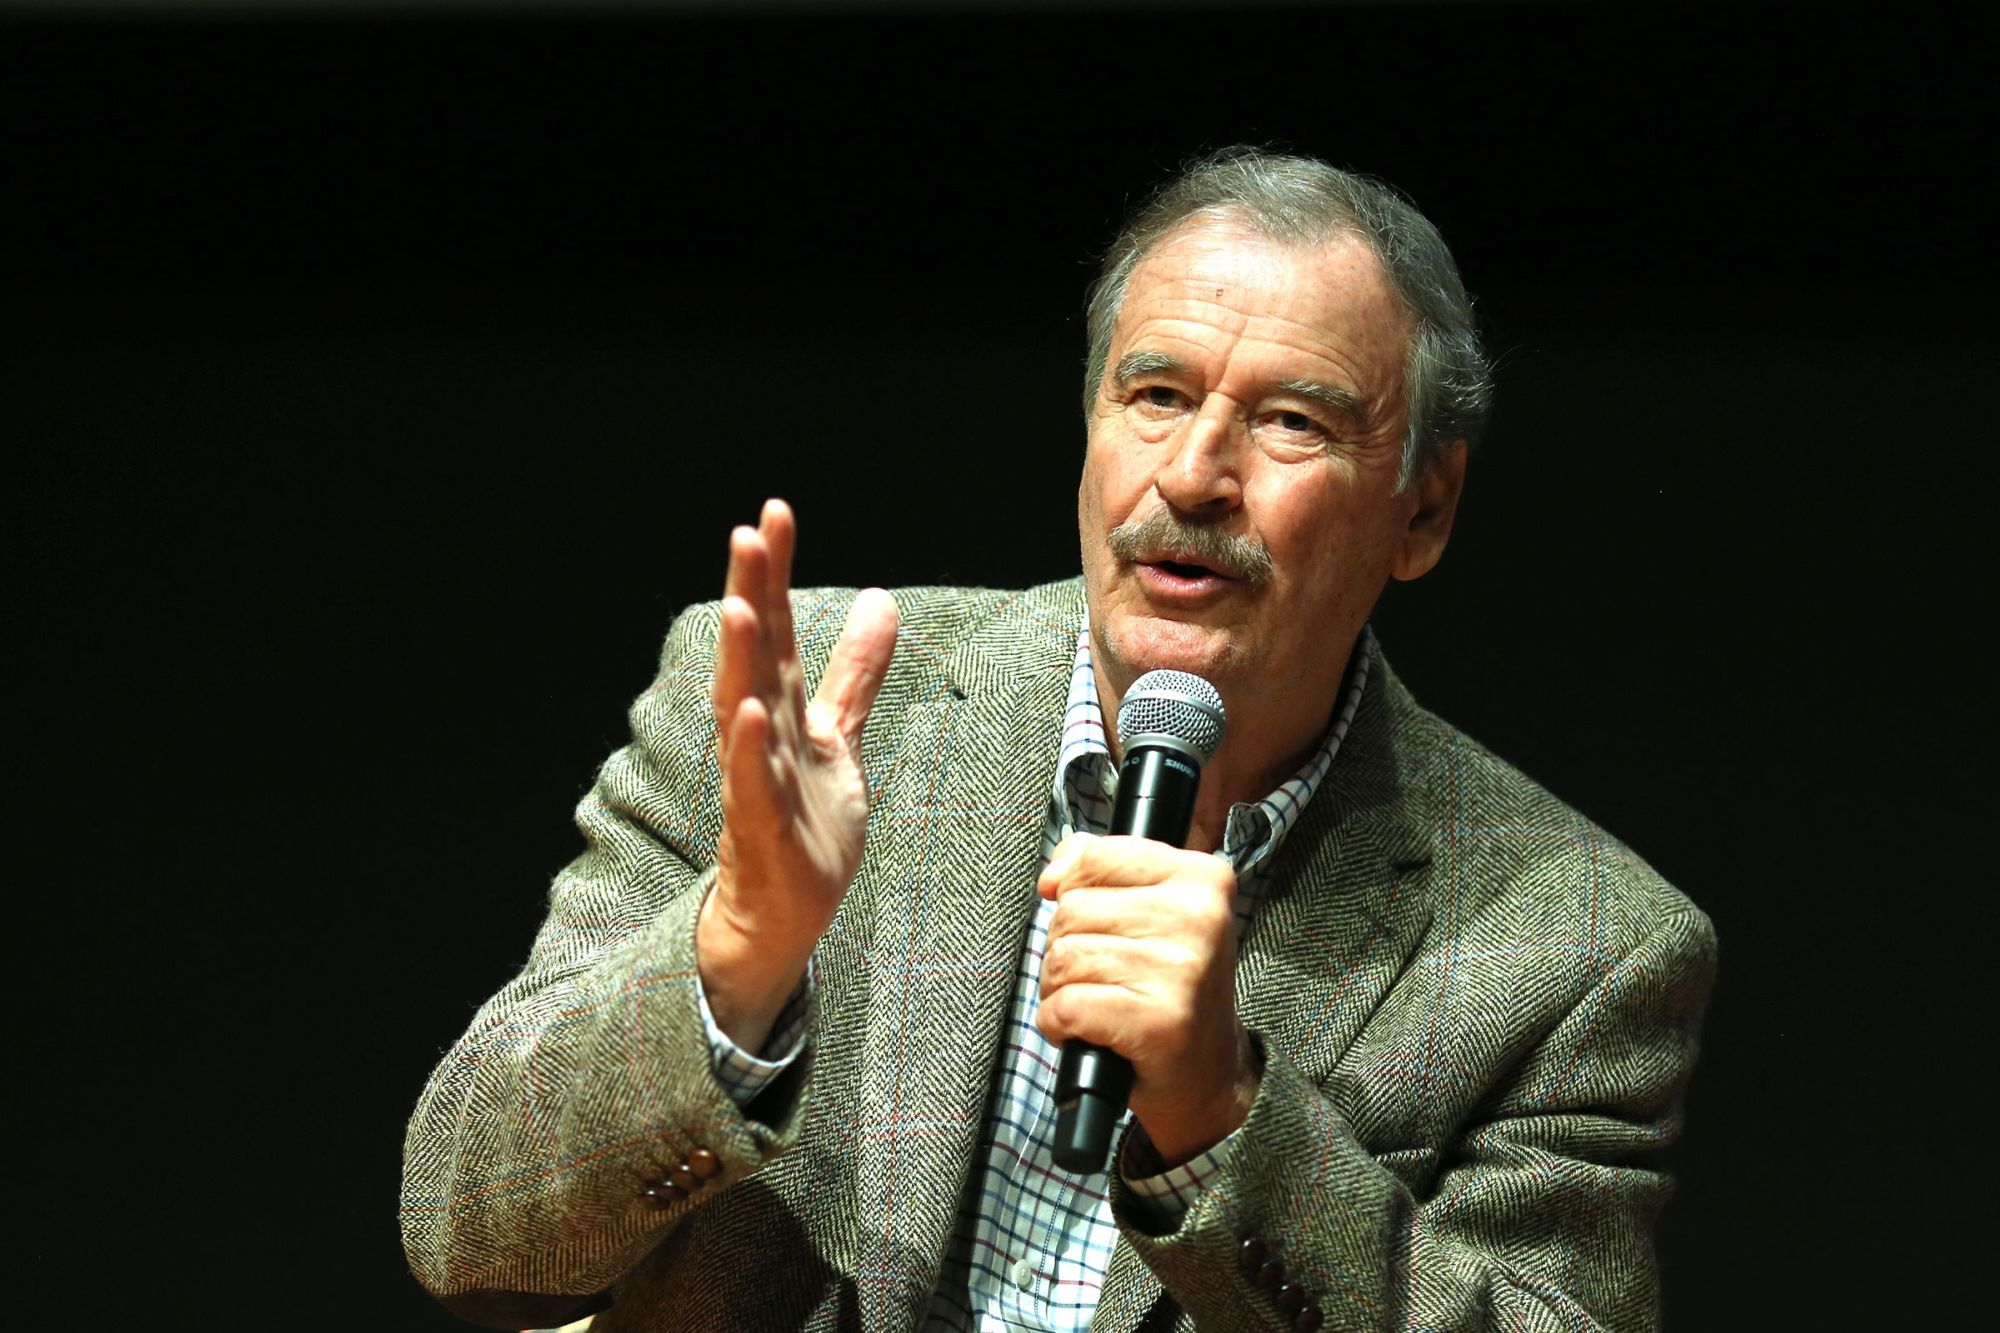 Mexico's Former President Vicente Fox Wants to Legalize Pot Everywhere